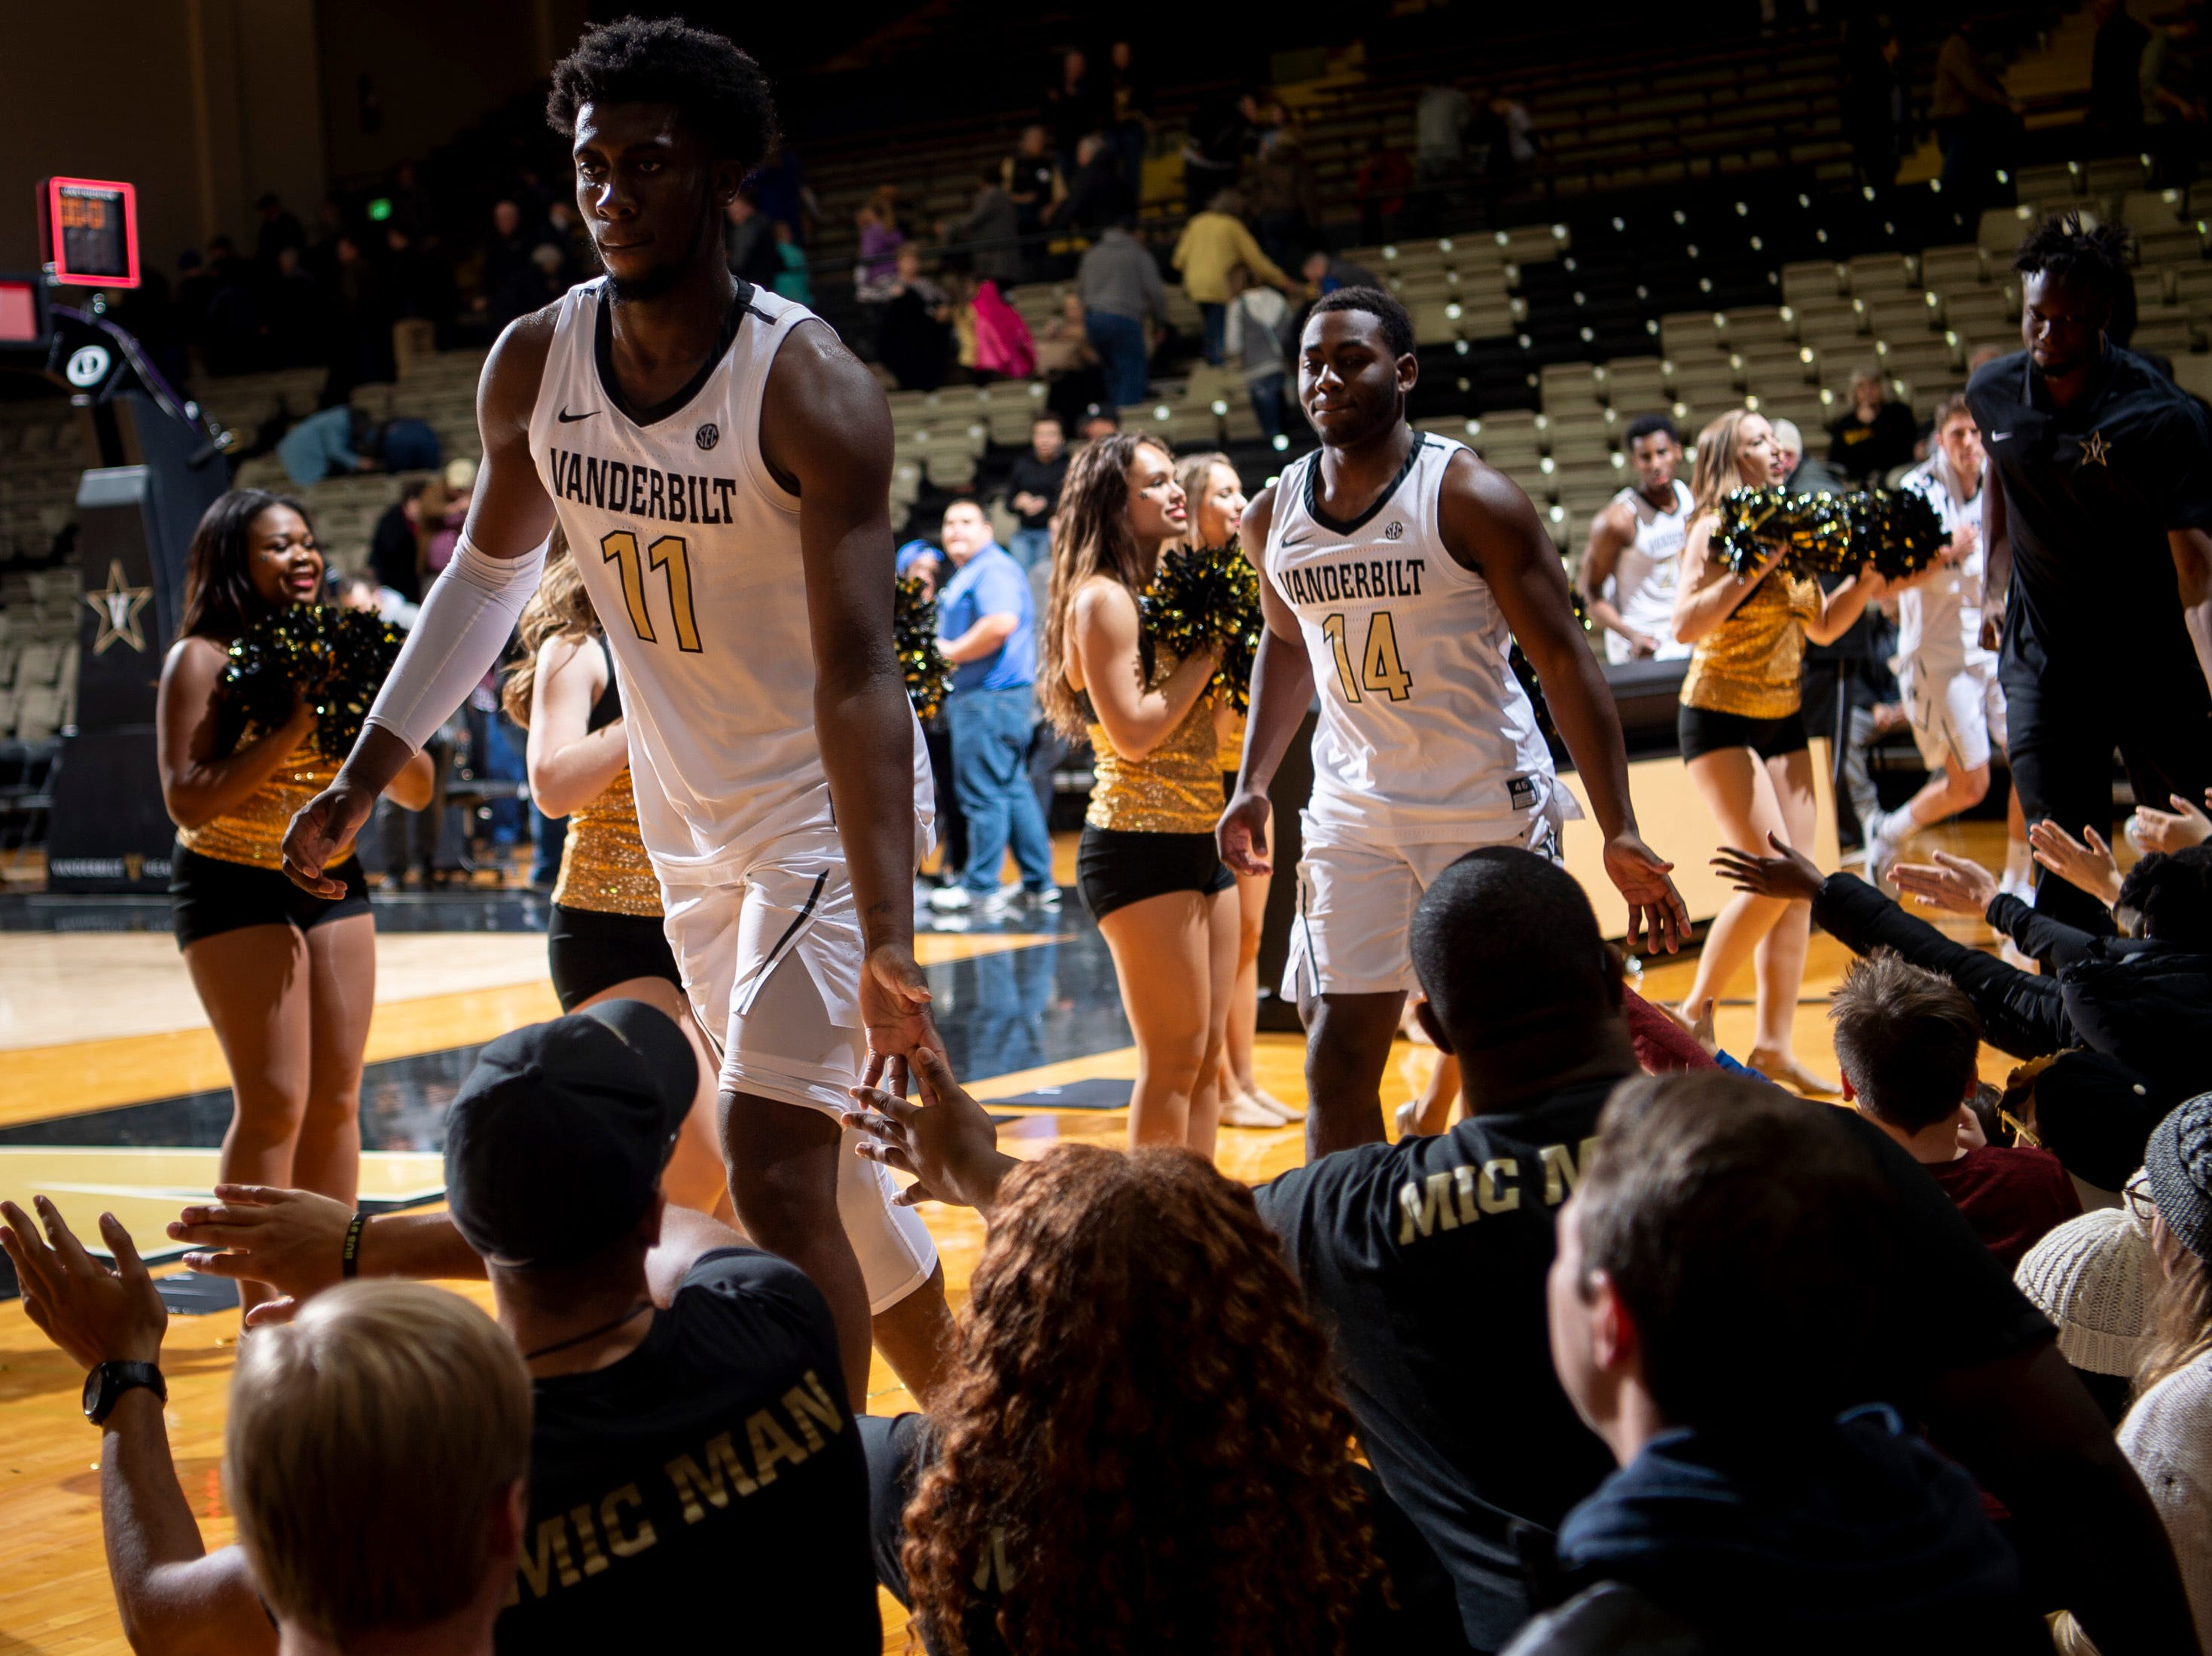 Vanderbilt forward Simisola Shittu (11) celebrates with fans after defeating MTSU at Memorial Gym in Nashville, Tenn., Wednesday, Dec. 5, 2018.